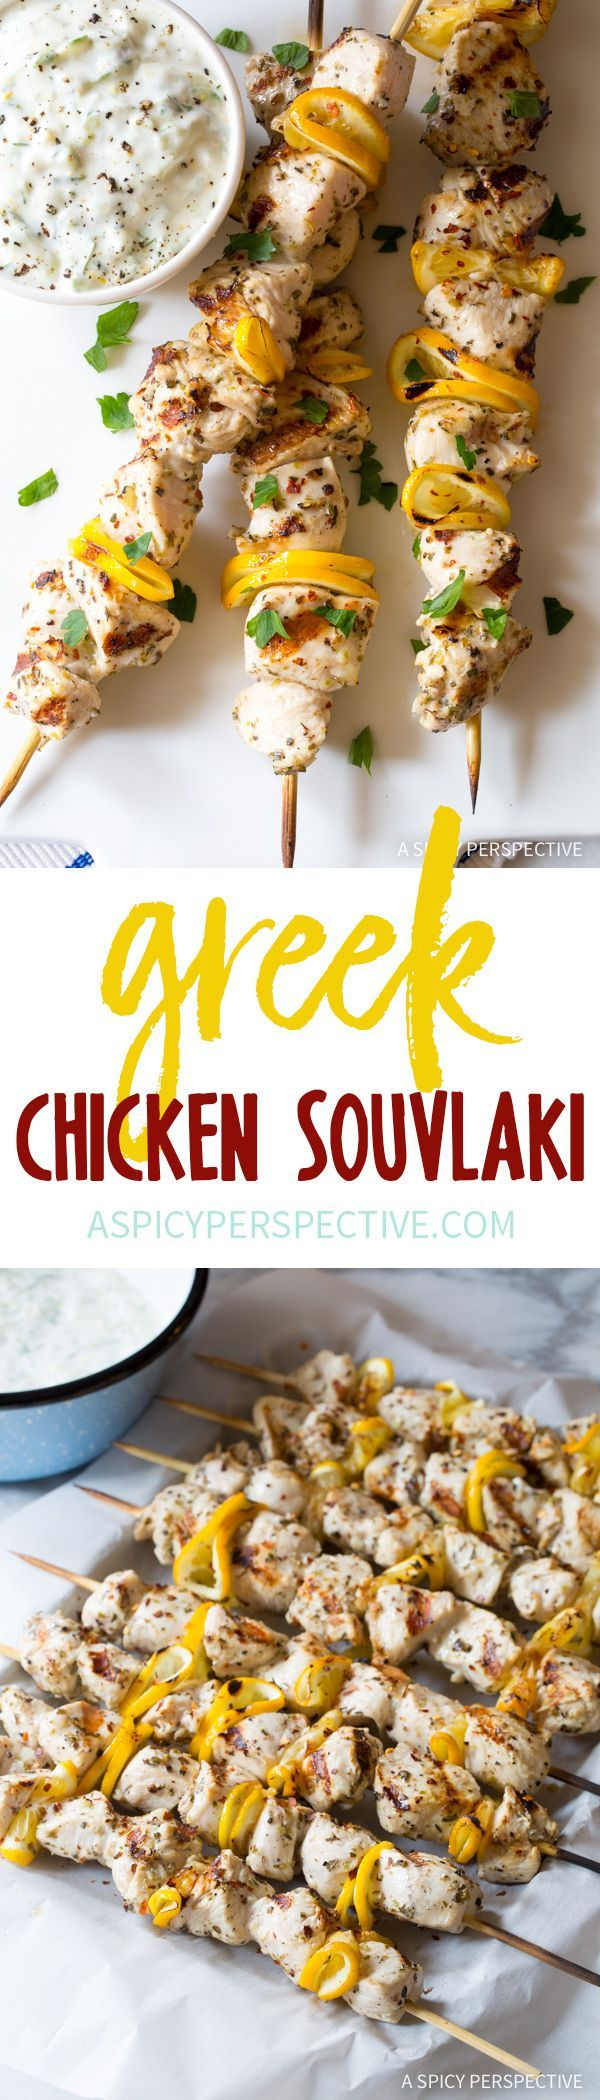 Hot Zesty Greek Chicken Souvlaki Recipe with Tzatziki Sauce! #lowcarb #glutenfree #healthy